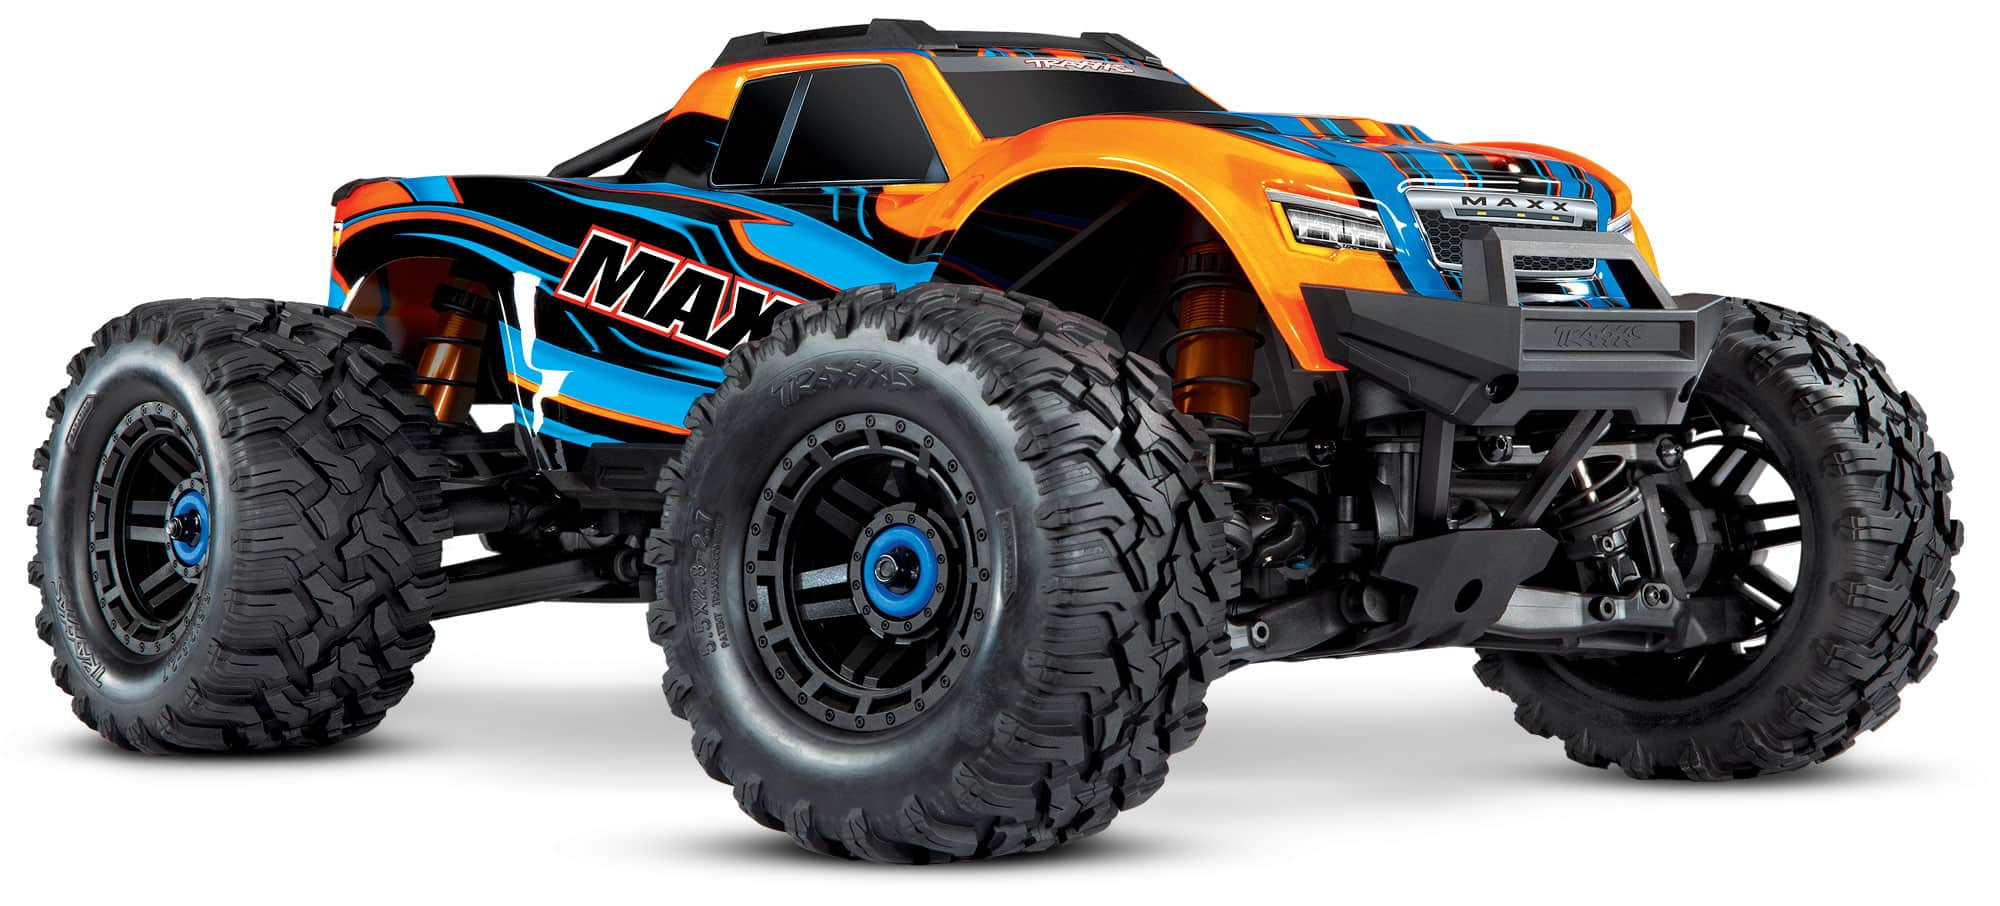 Mighty Maxx: Meet the Latest 1/10-scale Monster Truck from Traxxas